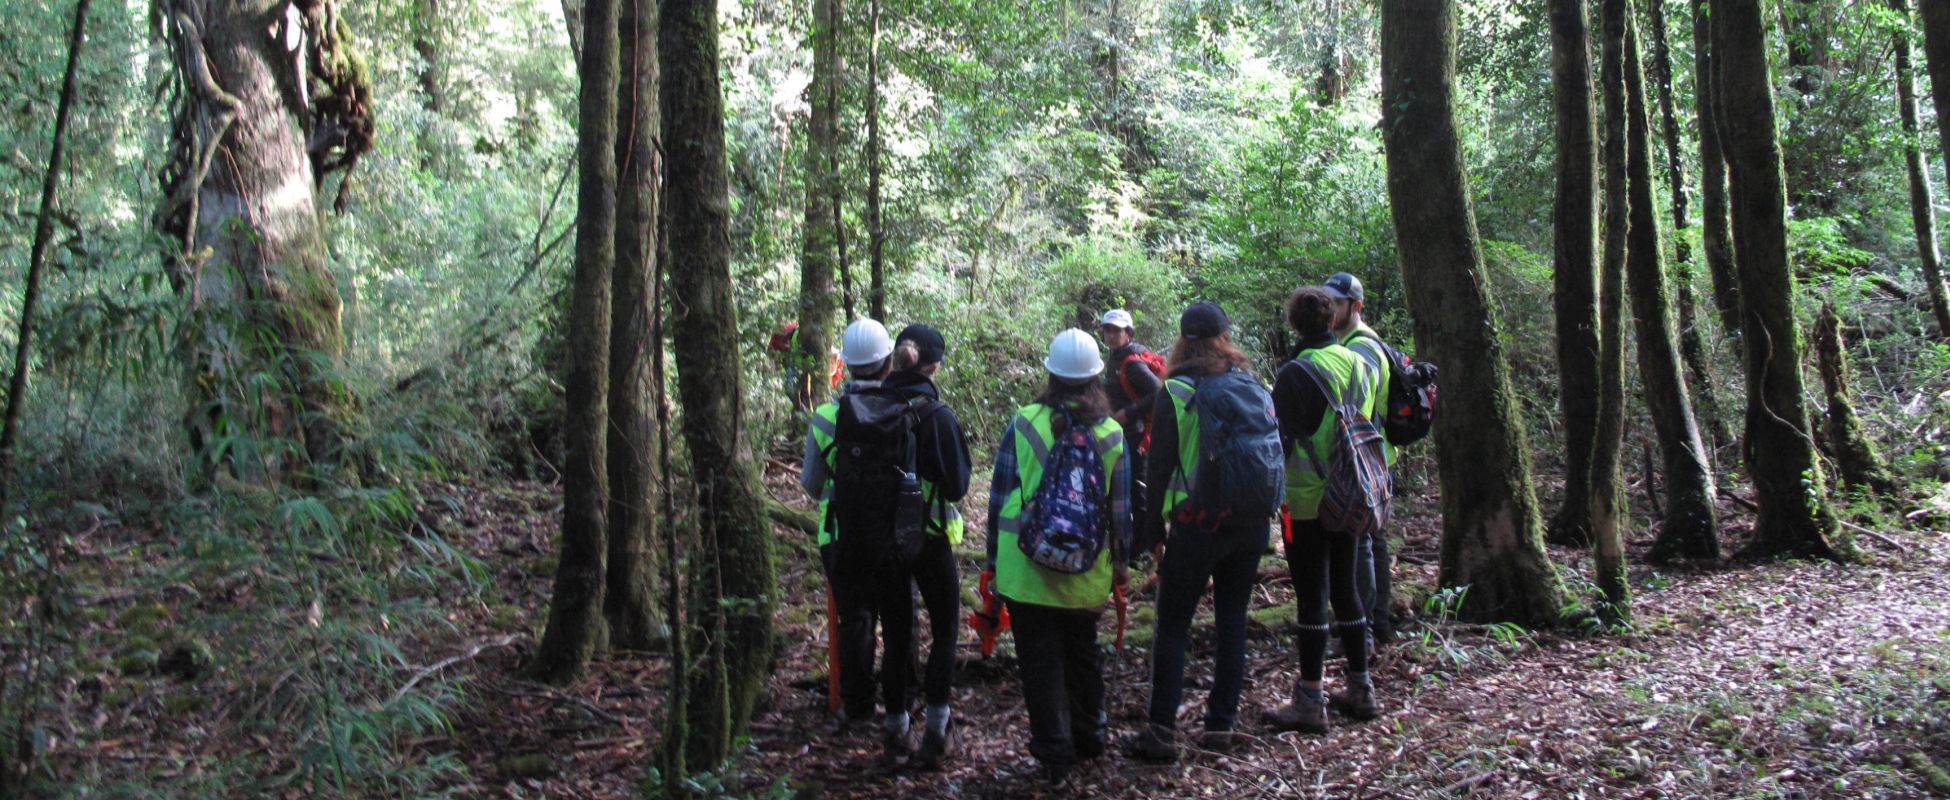 Forestry students standing in a forest